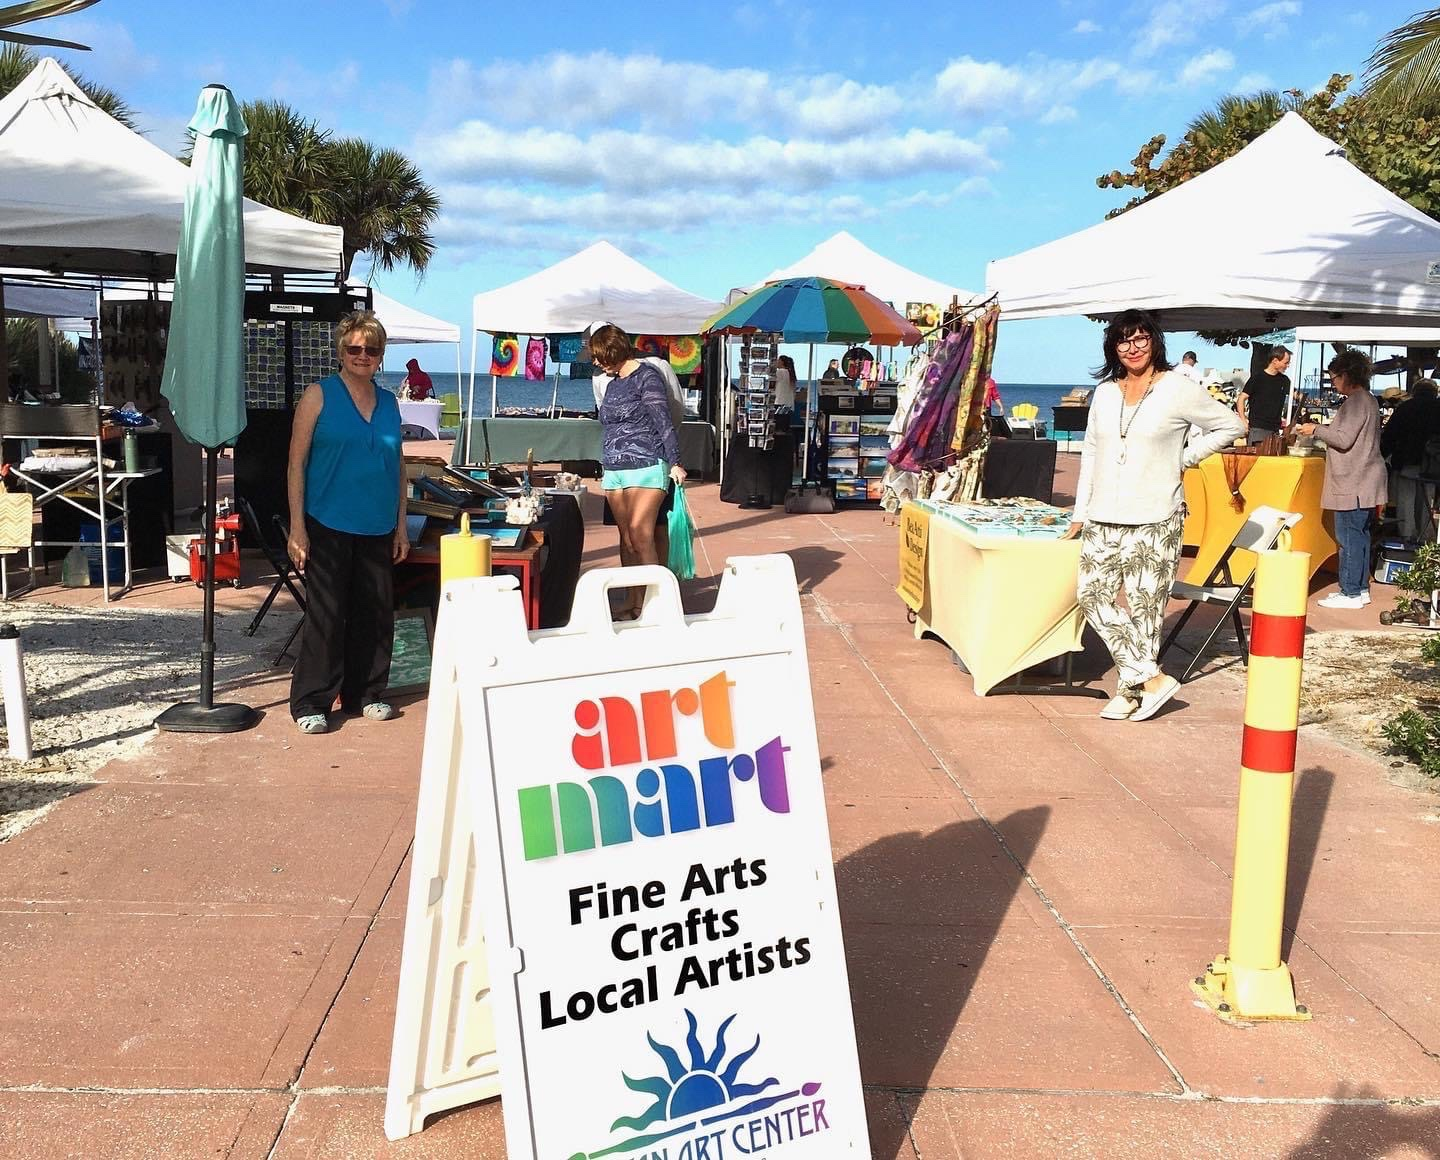 People at the Art Mart Market on a sunny day. with Art Mart sign St. Pete Beach Florida.